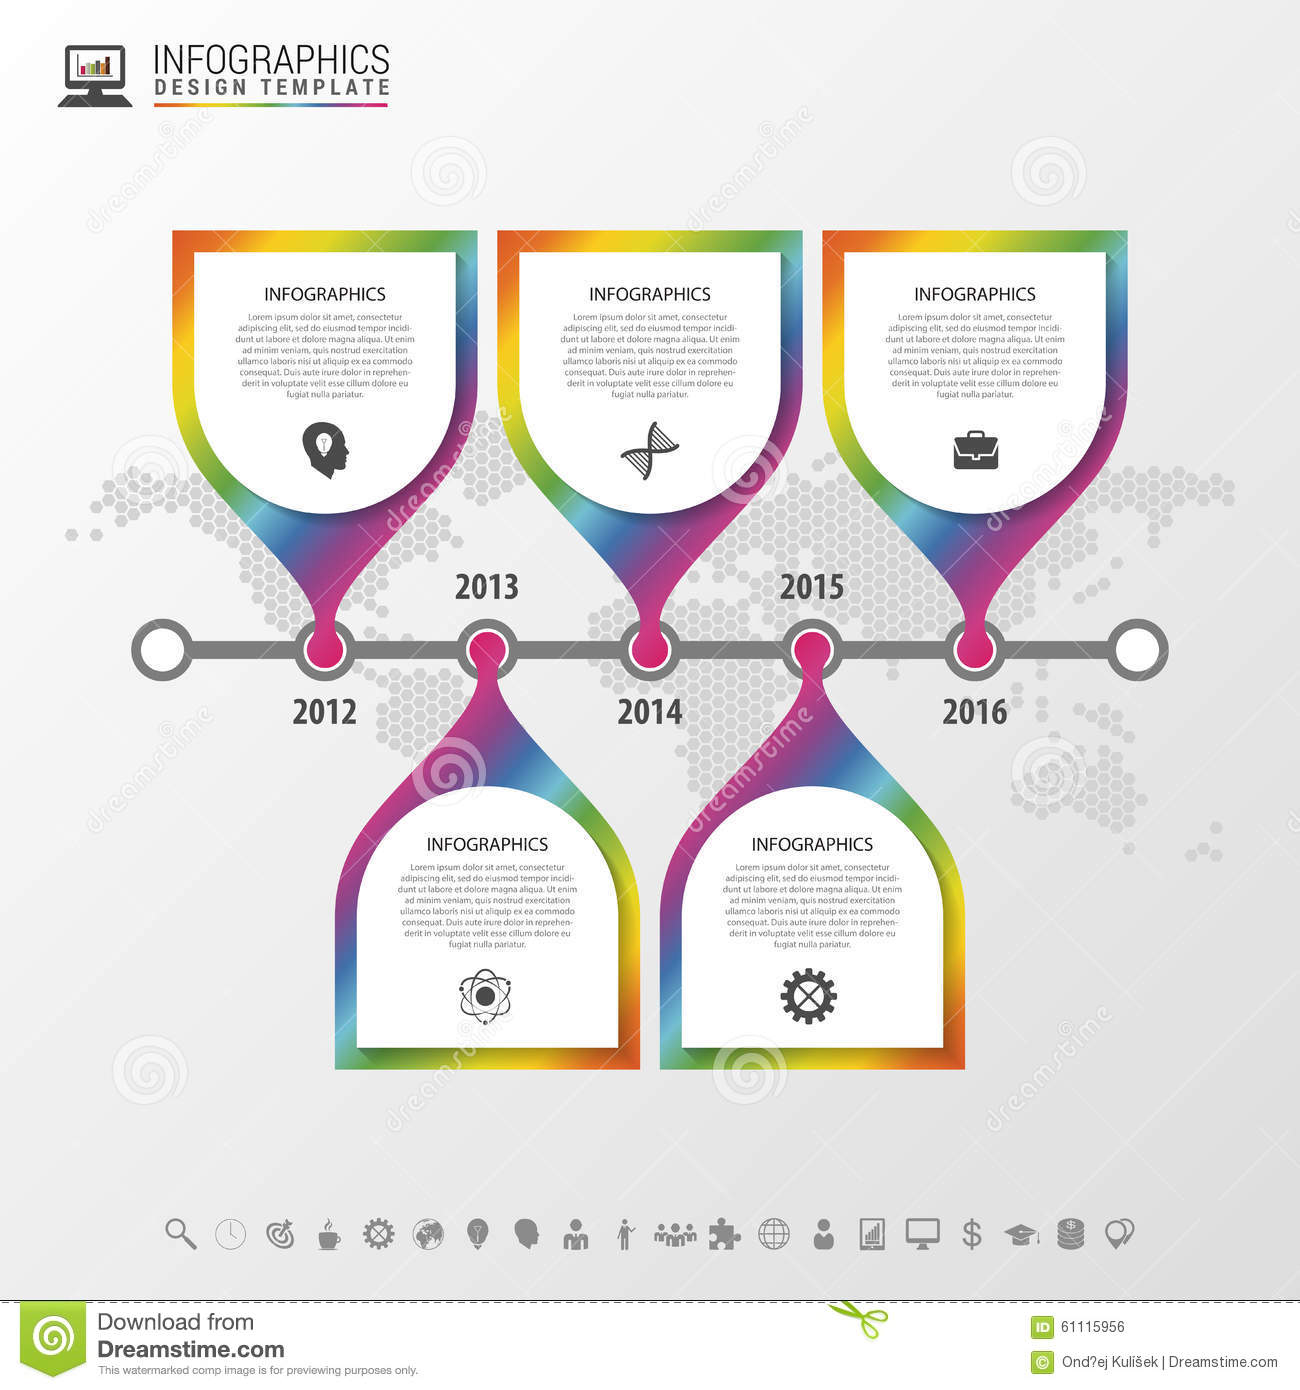 Timeline infographic with world map colorful modern design template timeline infographic with world map colorful modern design template vector illustration gumiabroncs Gallery